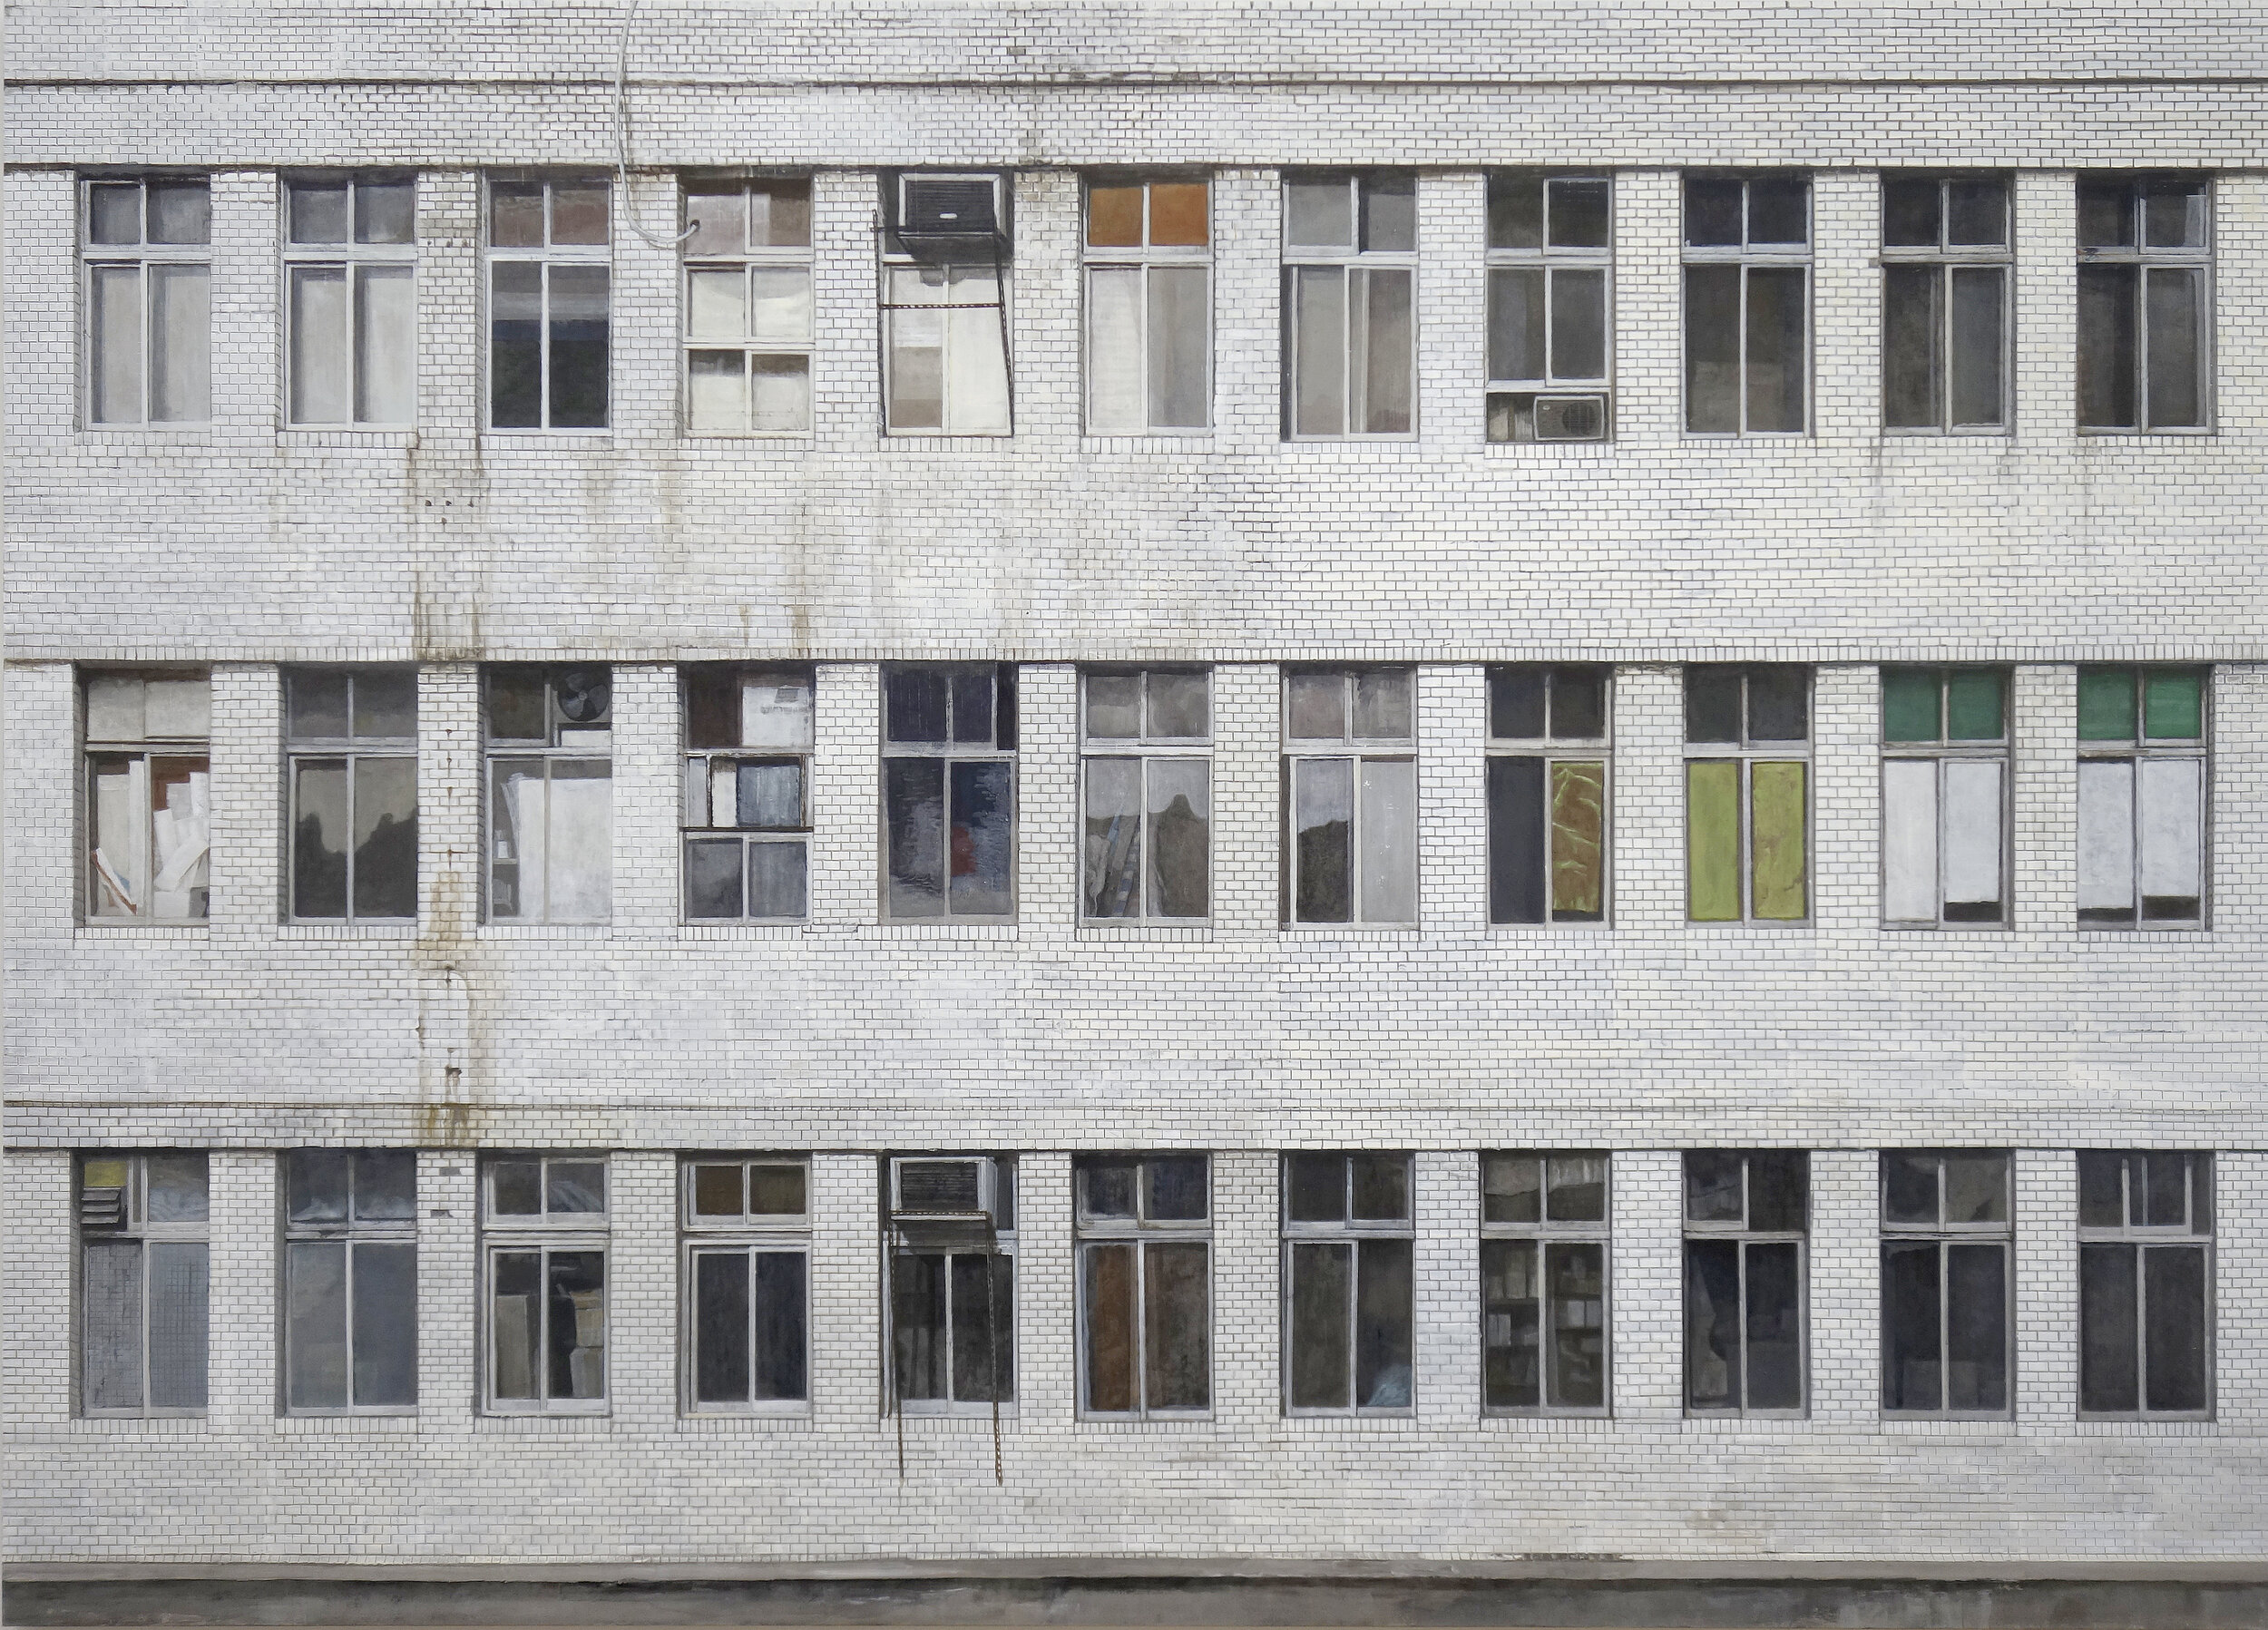 Jung Jae-ho,  Hwanggum Building , 2019, 149x209cm, Acrylic on Korean paper, Courtesy of the artist and Choi&Lager Gallery.